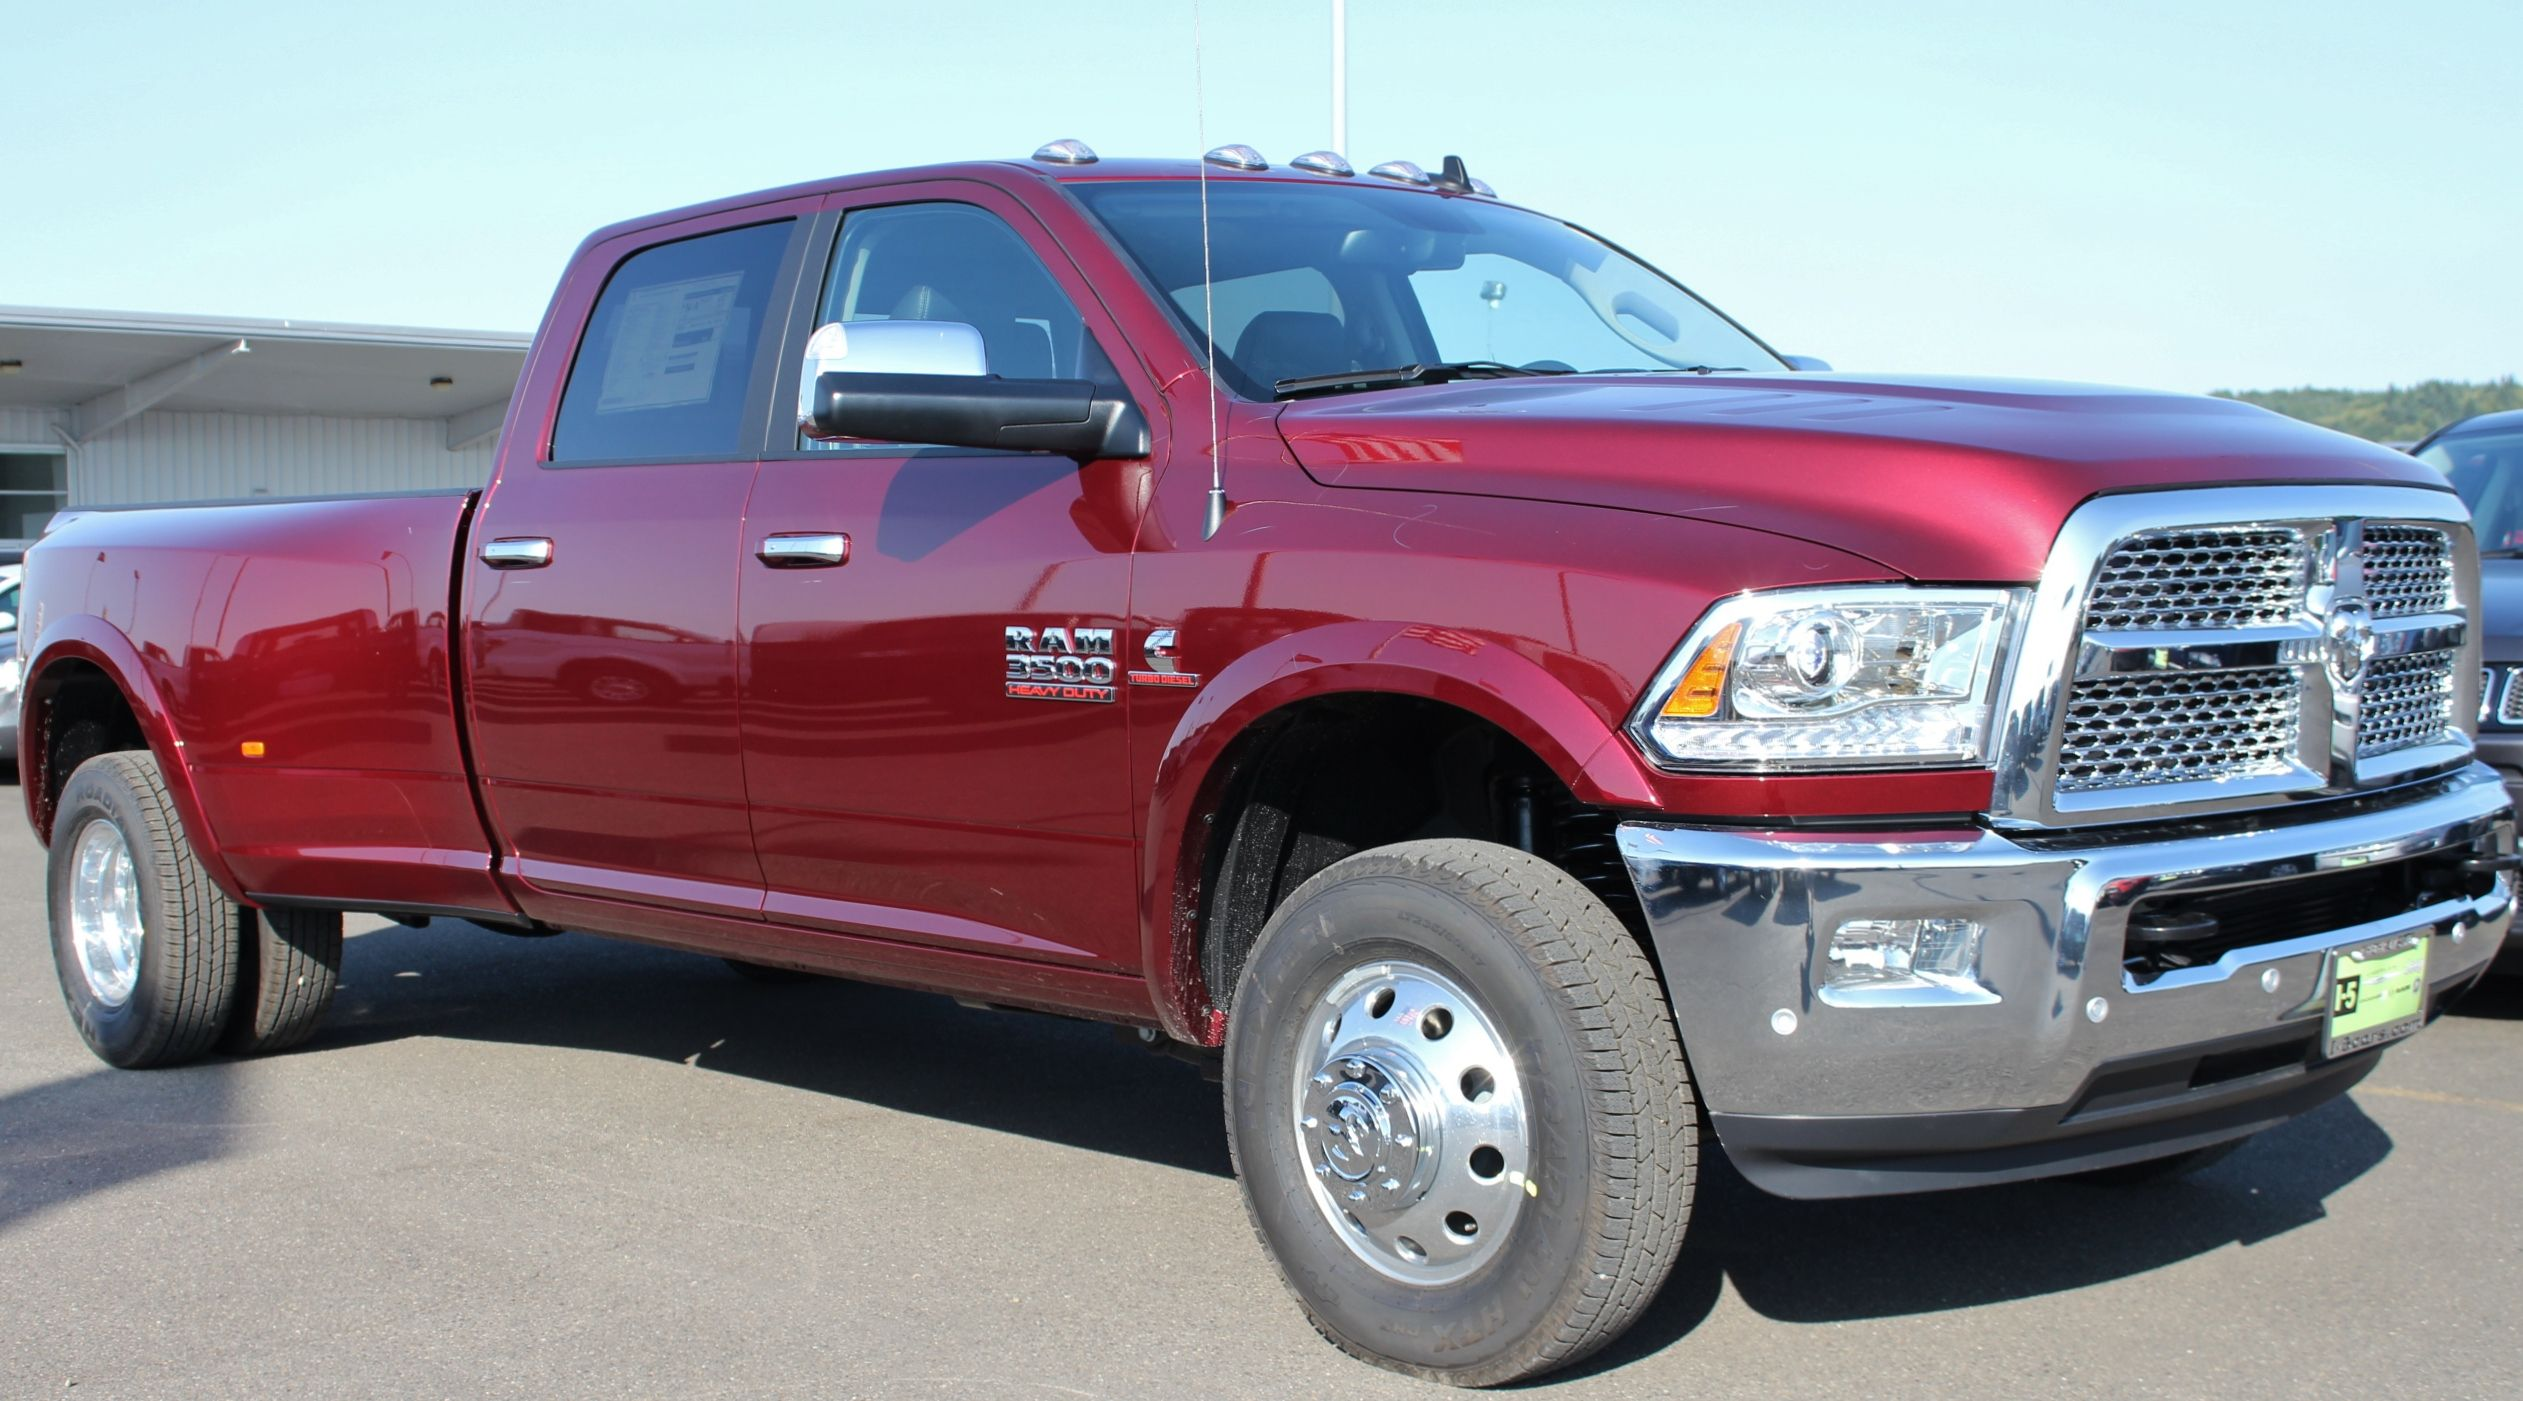 new 2018 dodge ram. Fine Ram New 2018 Ram 3500 Laramie With New Dodge Ram